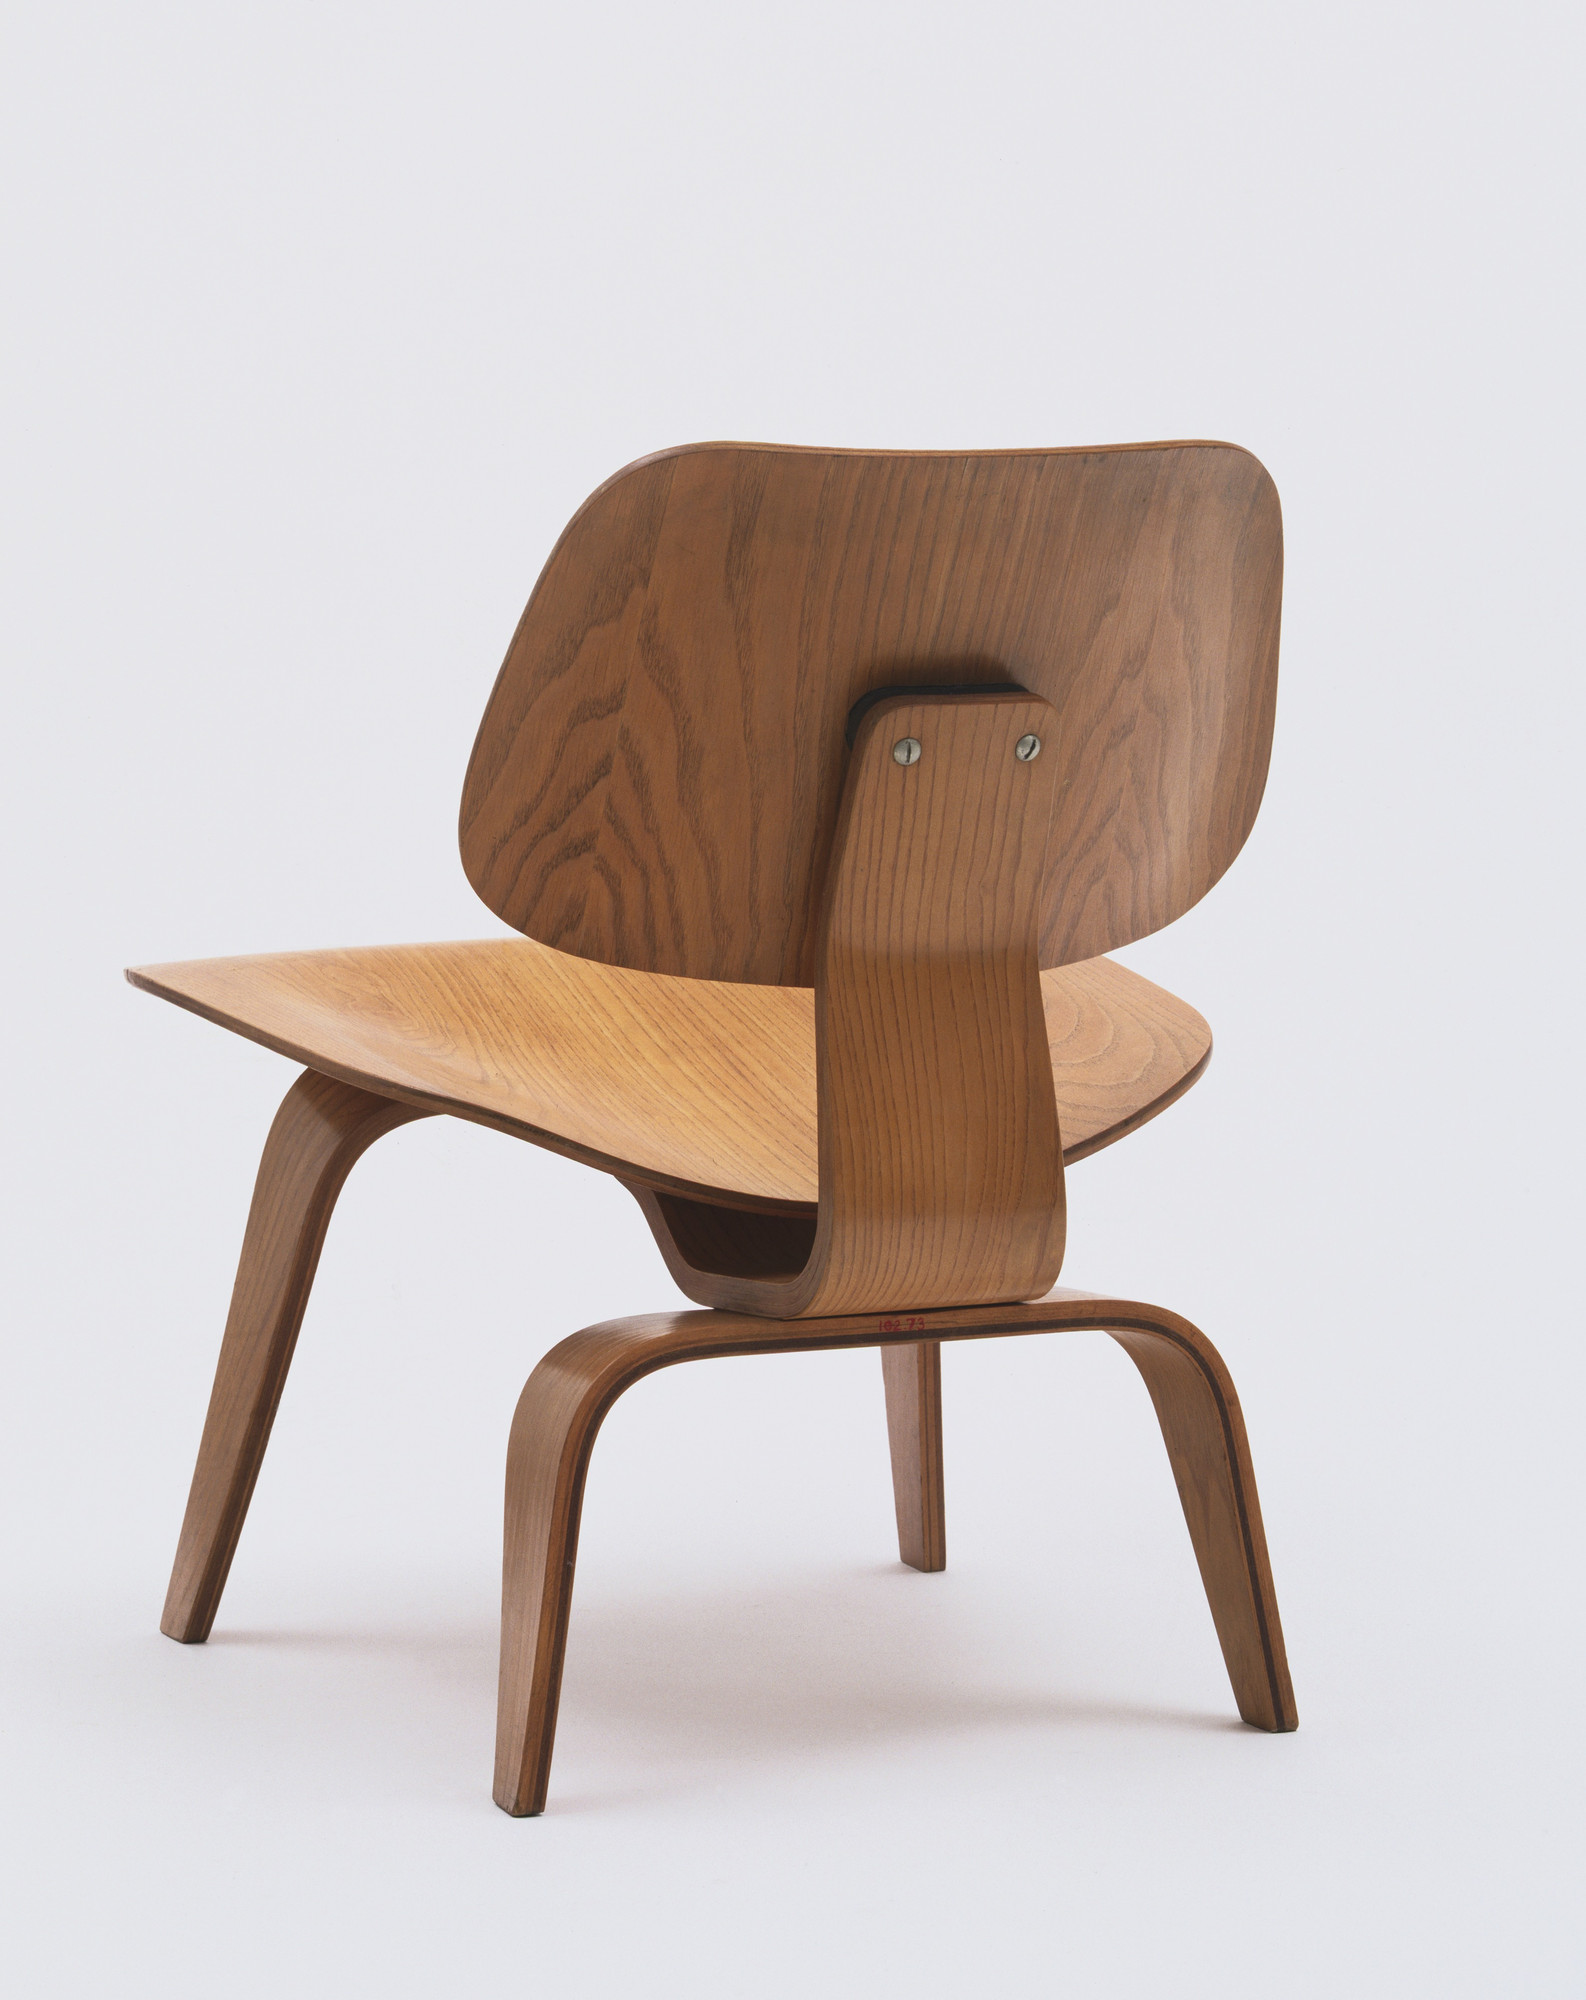 Charles Eames, Ray Eames. Low Side Chair. 1946